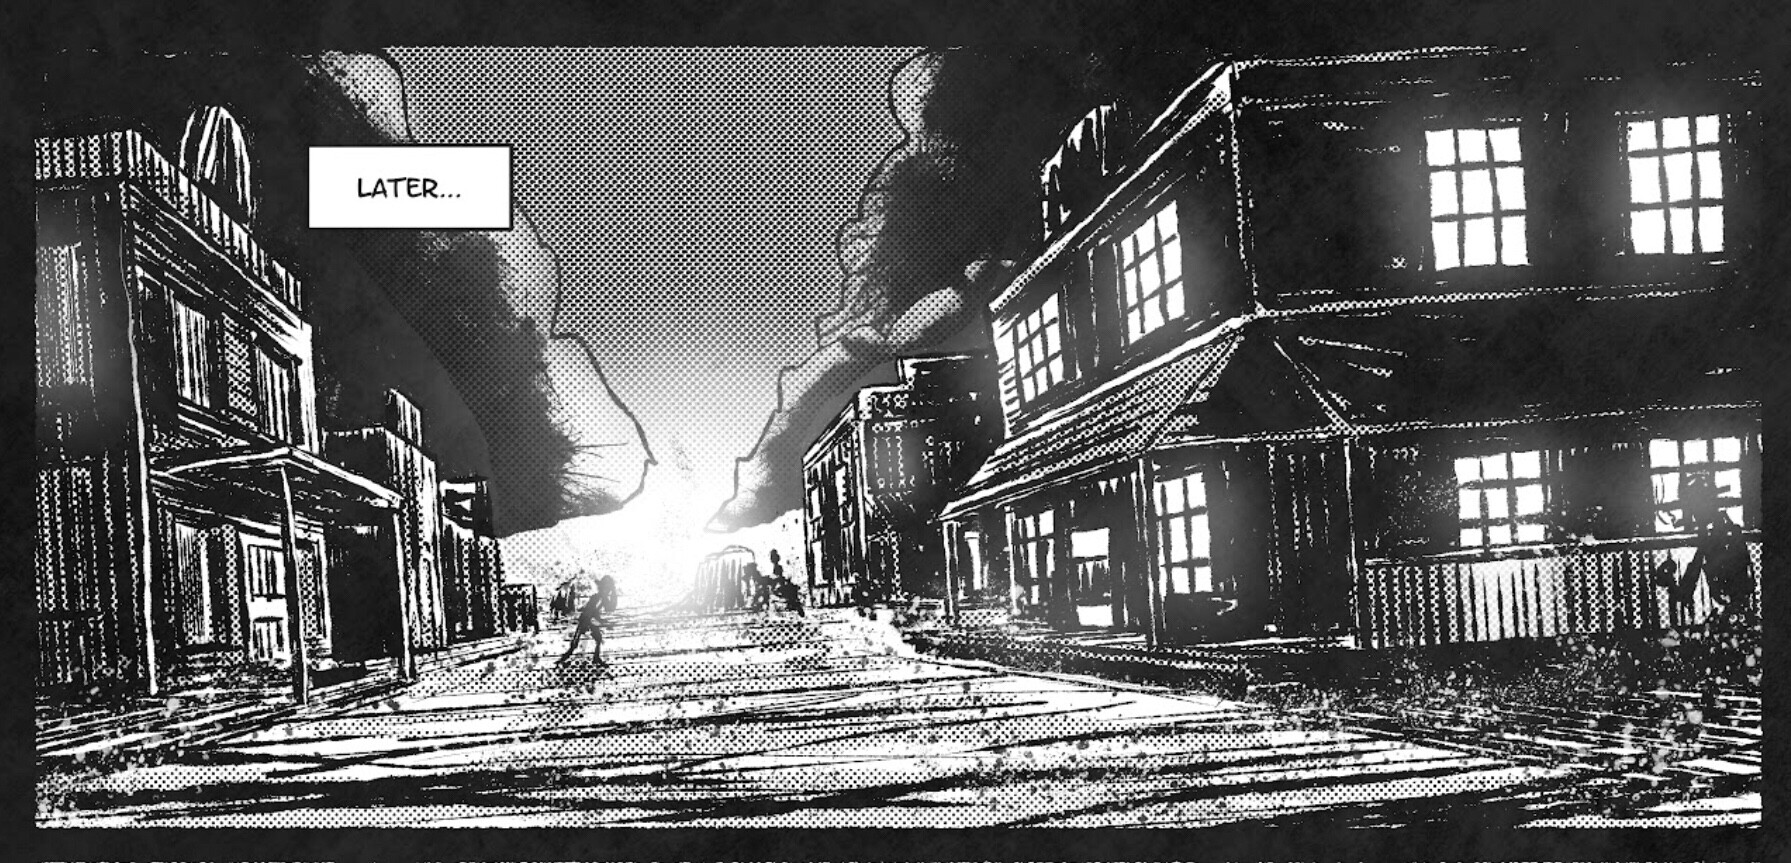 Panel from Give Up the Ghost.